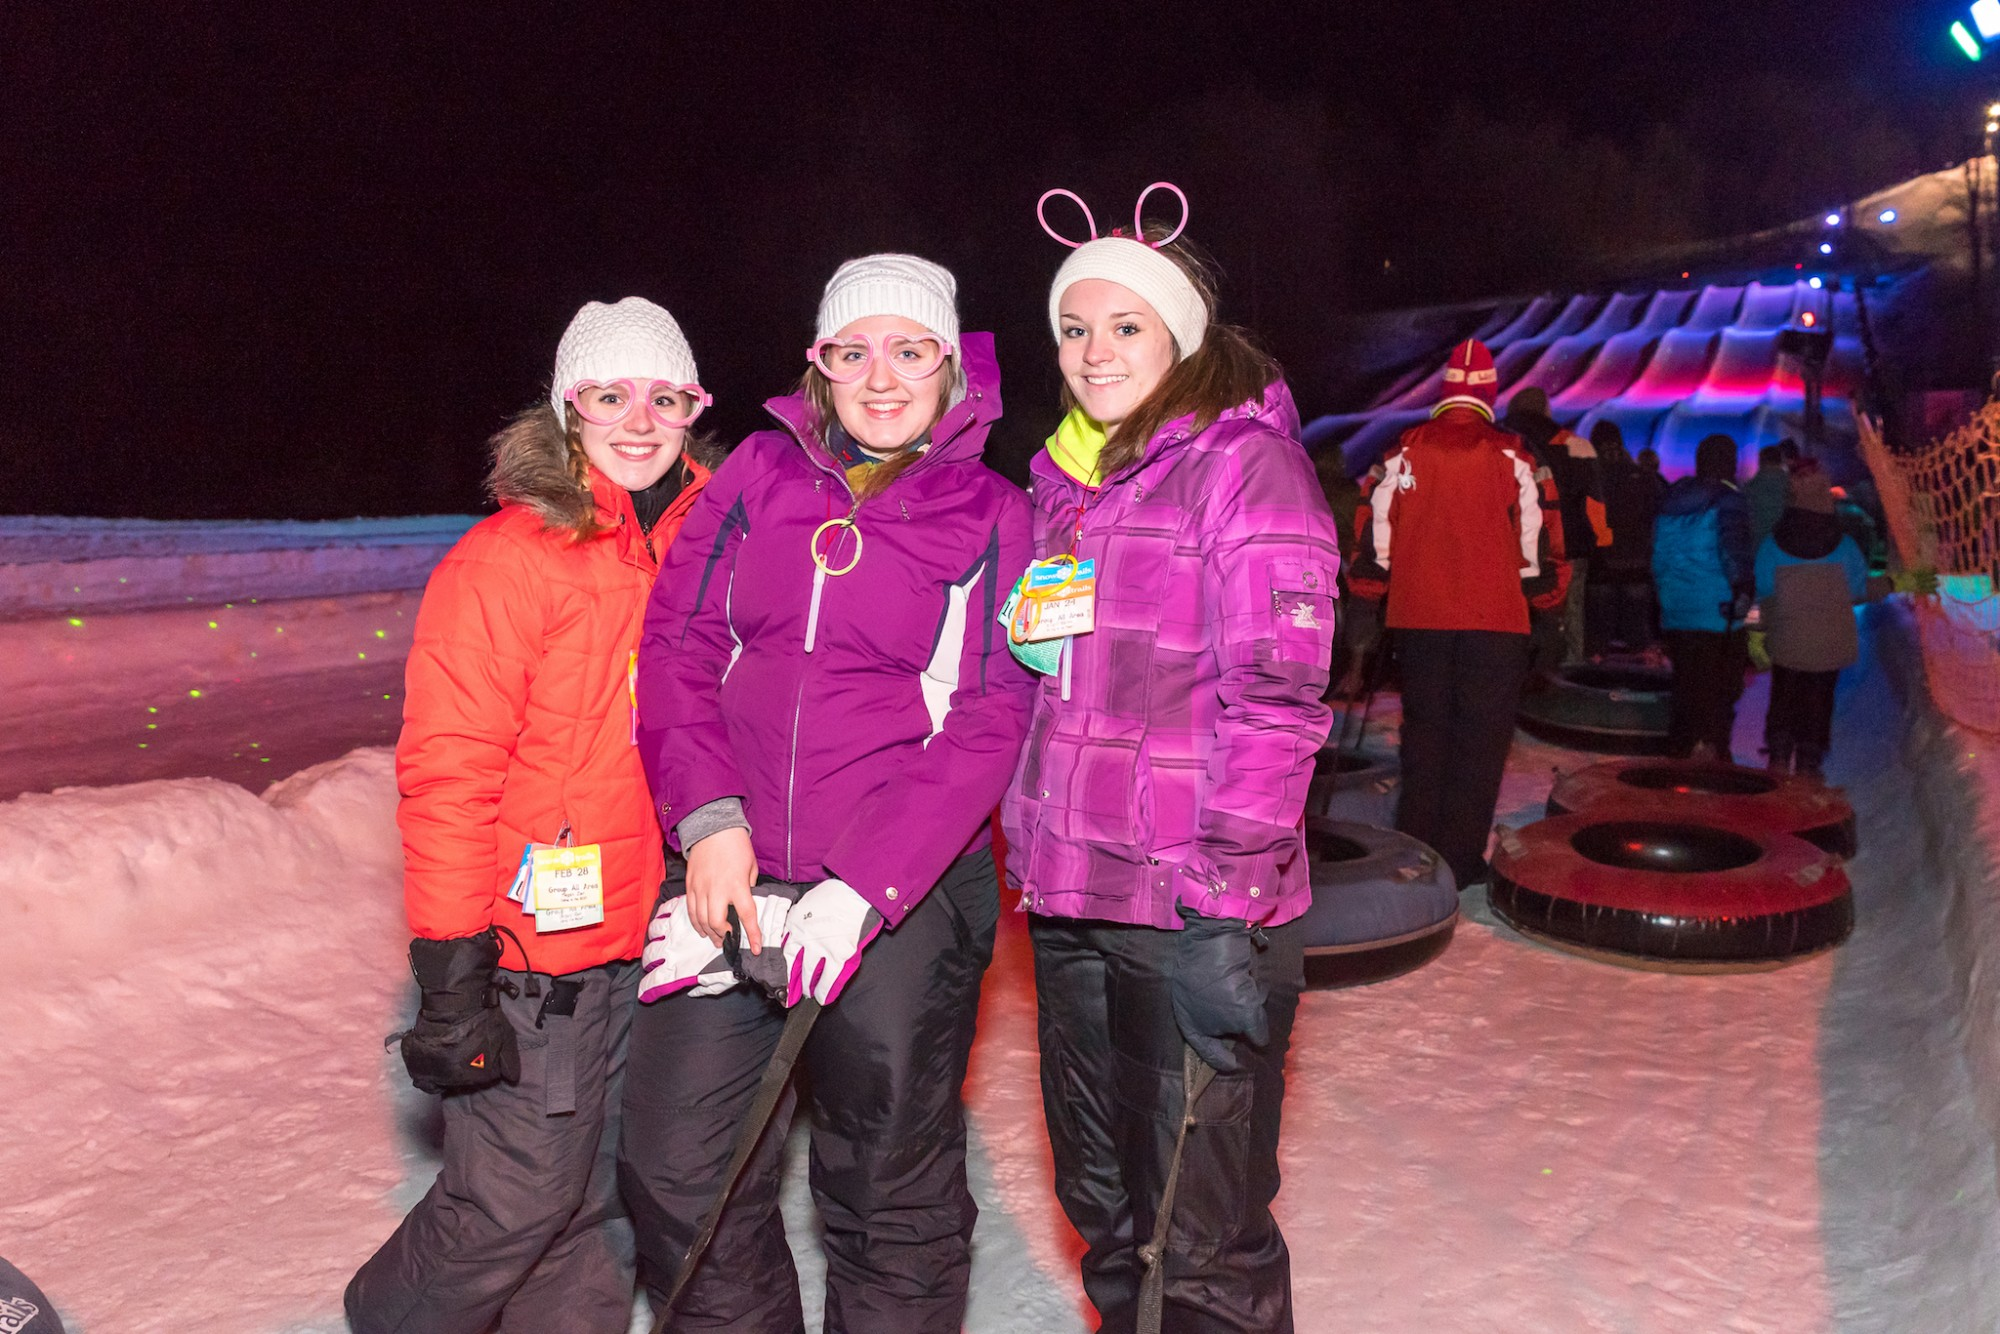 Late Night Glow Tubing with Friends at Snow Trails Vertical Descent Tubing Park